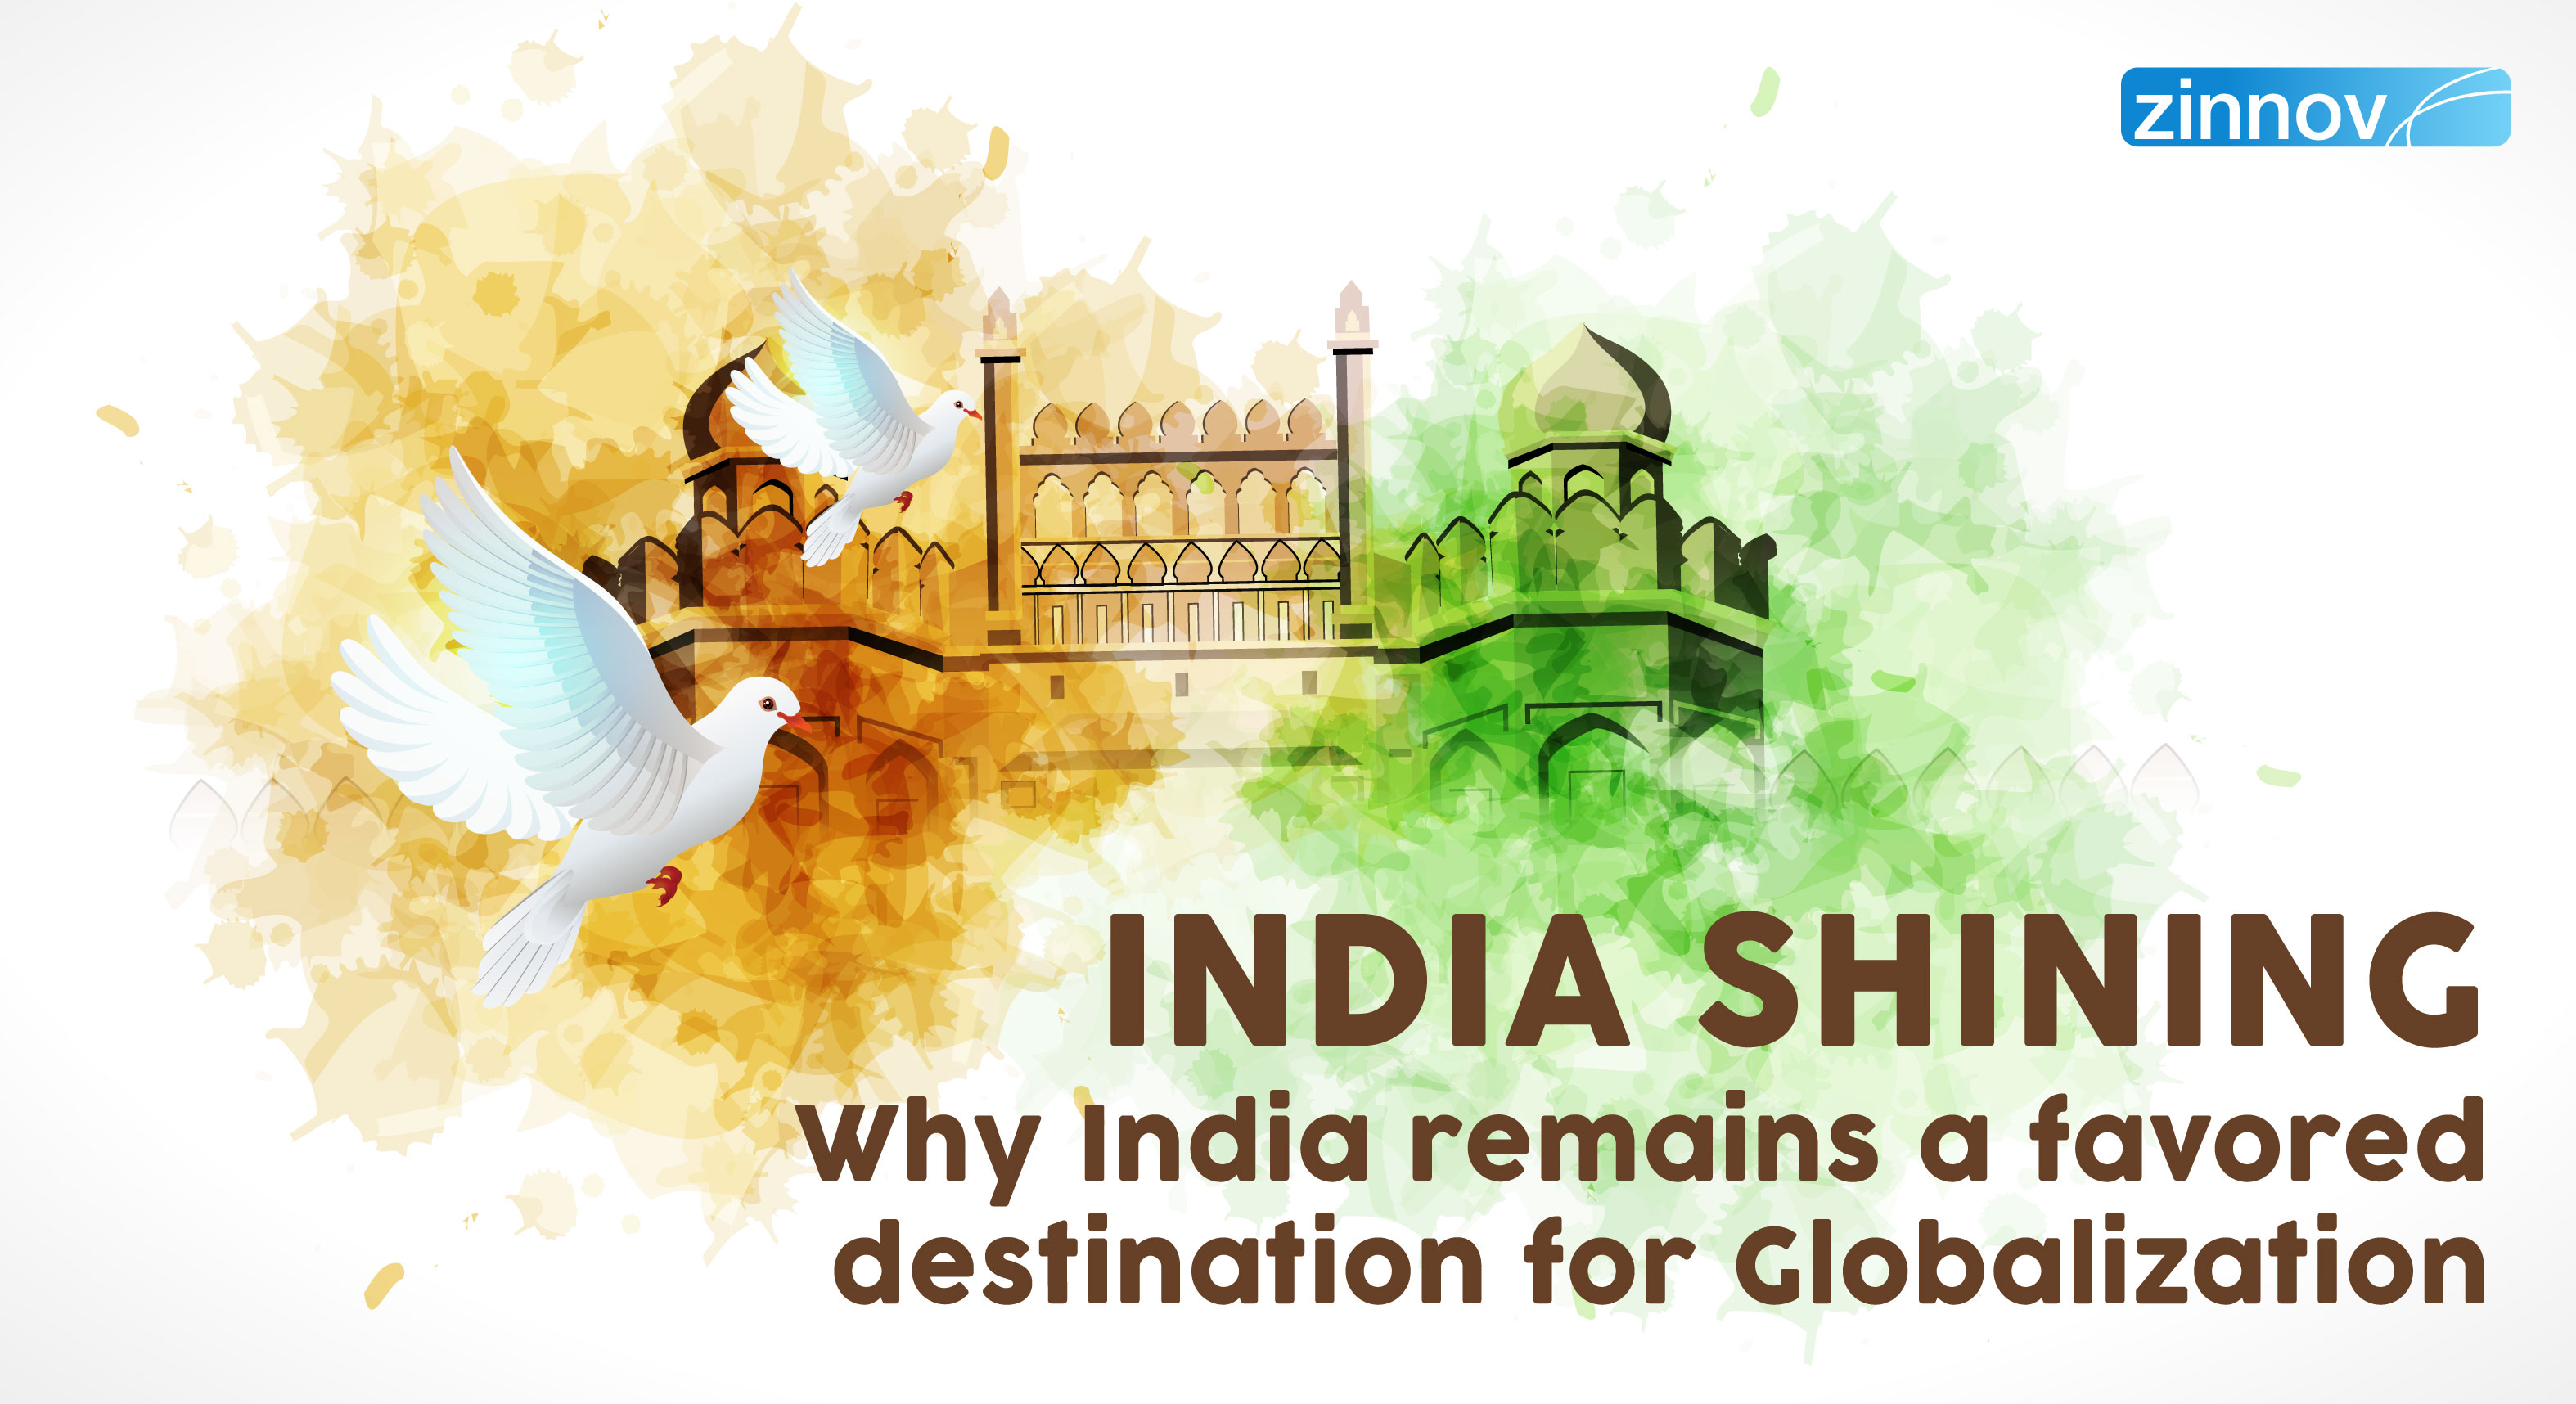 4 Key Factors Propelling India To The Top Of The Globalization Chart